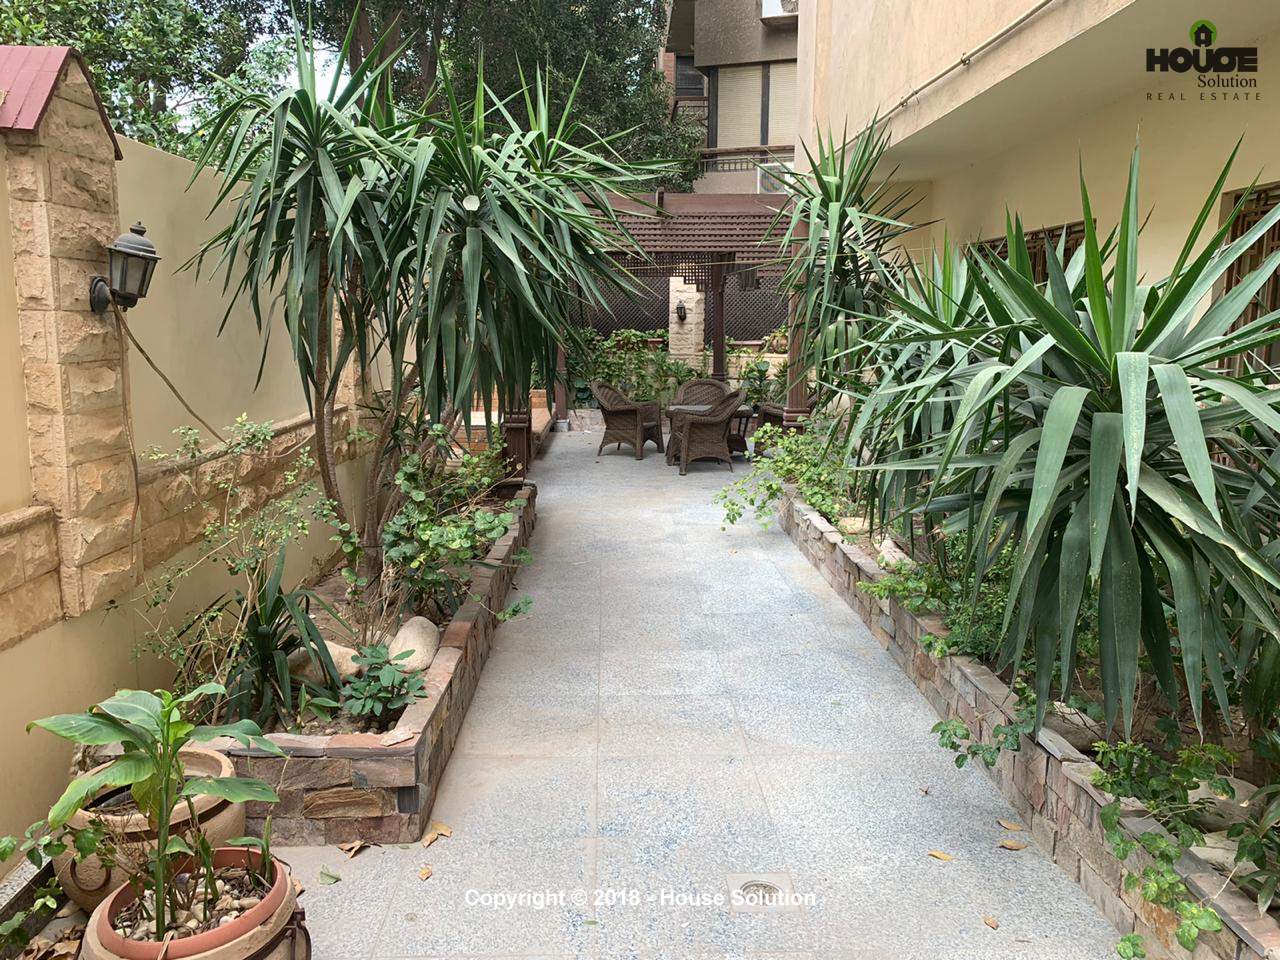 Ground Floors For Rent In Maadi Maadi Sarayat #3947 -0